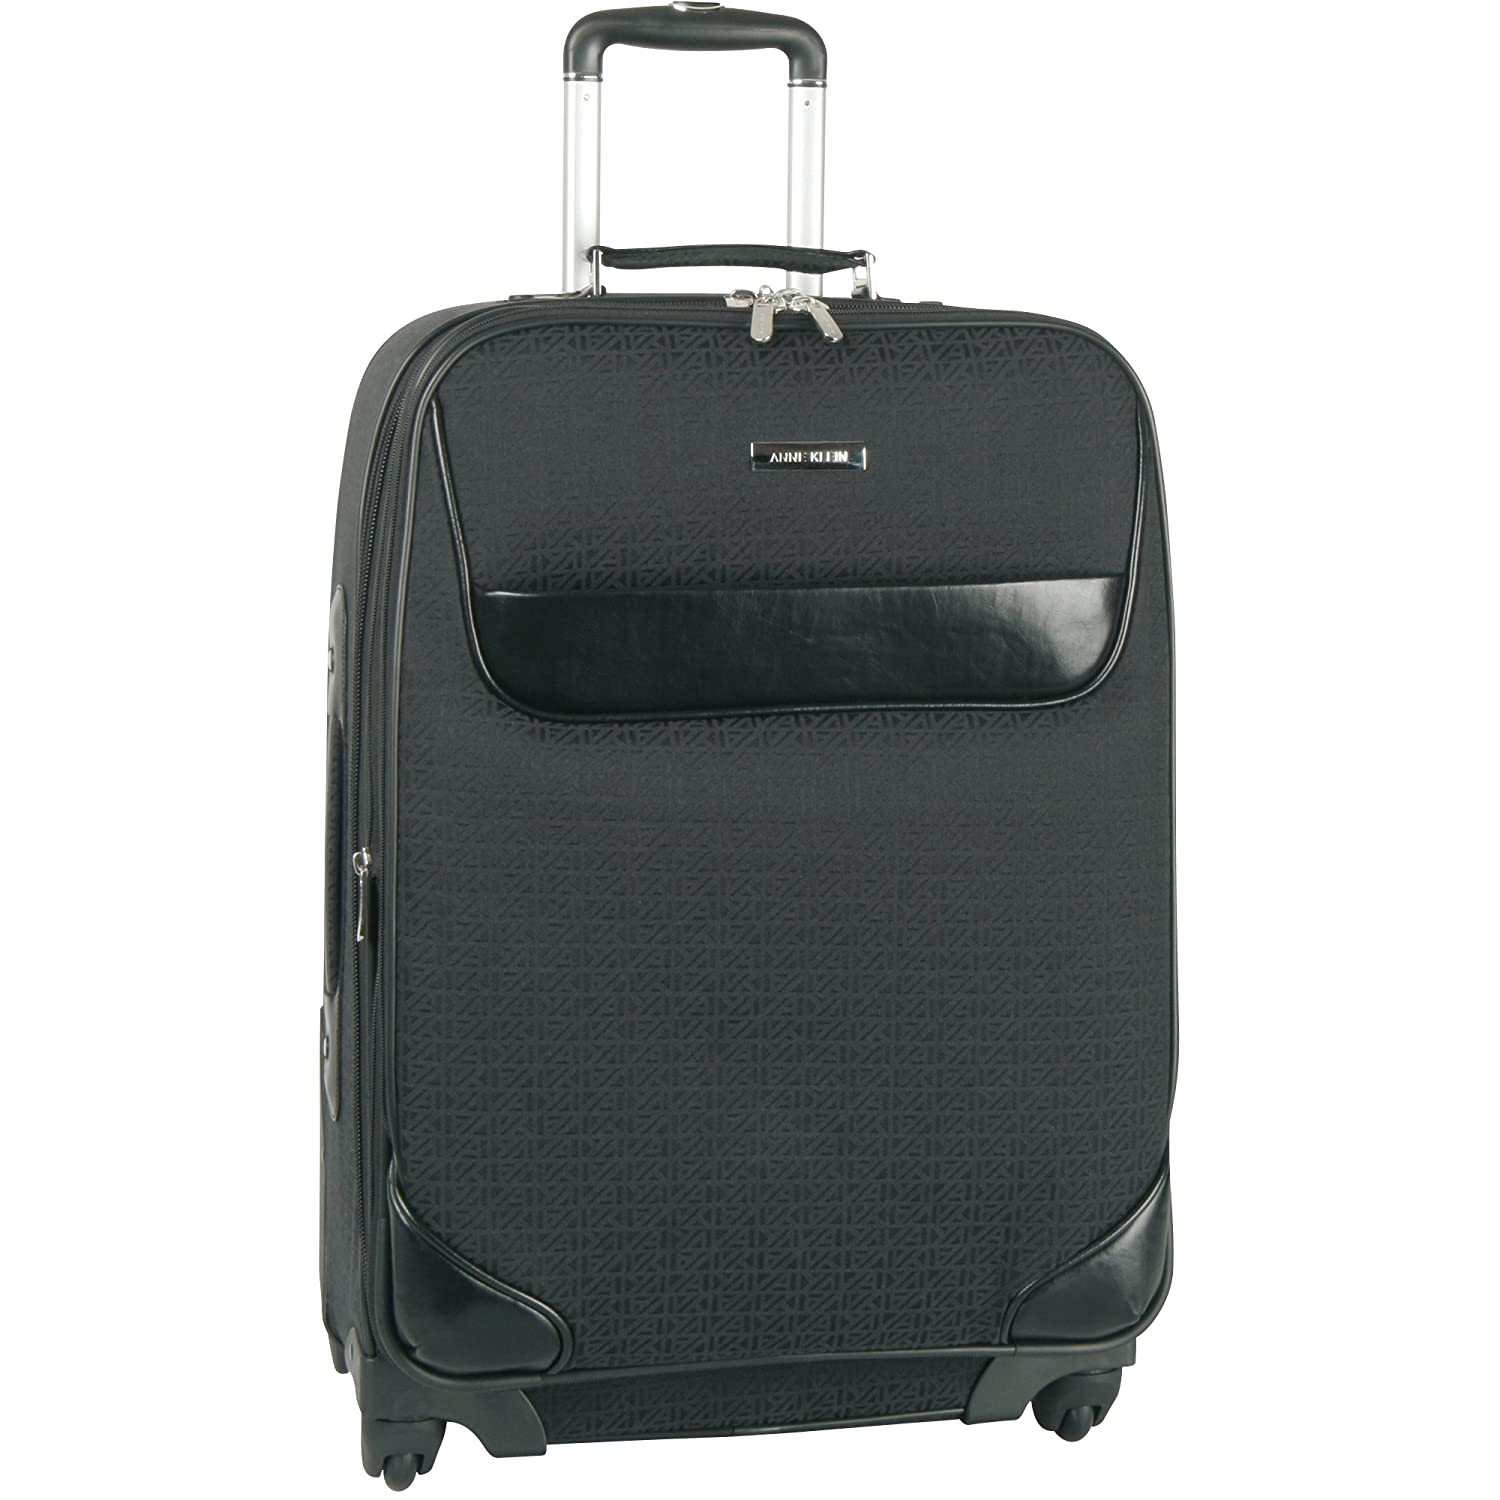 Anne Klein Luggage Signature Jacquard Spinner Carry-On, Black Tonal, One Size